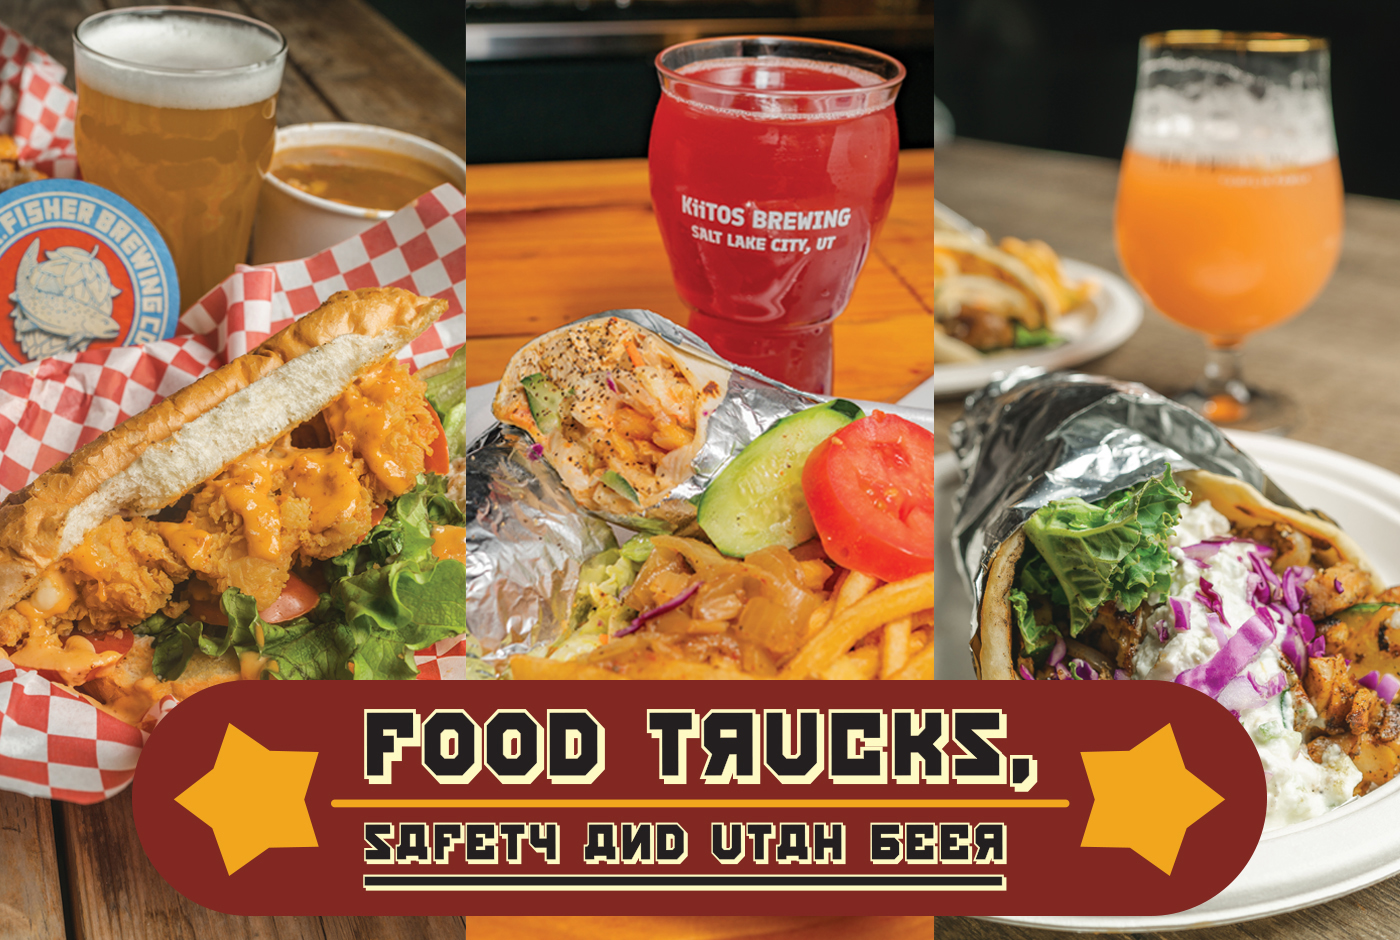 These breweries are serving up a safe way to go on a beer run and grab a bite from a variety of rotating food trucks. Check them out and show your support!